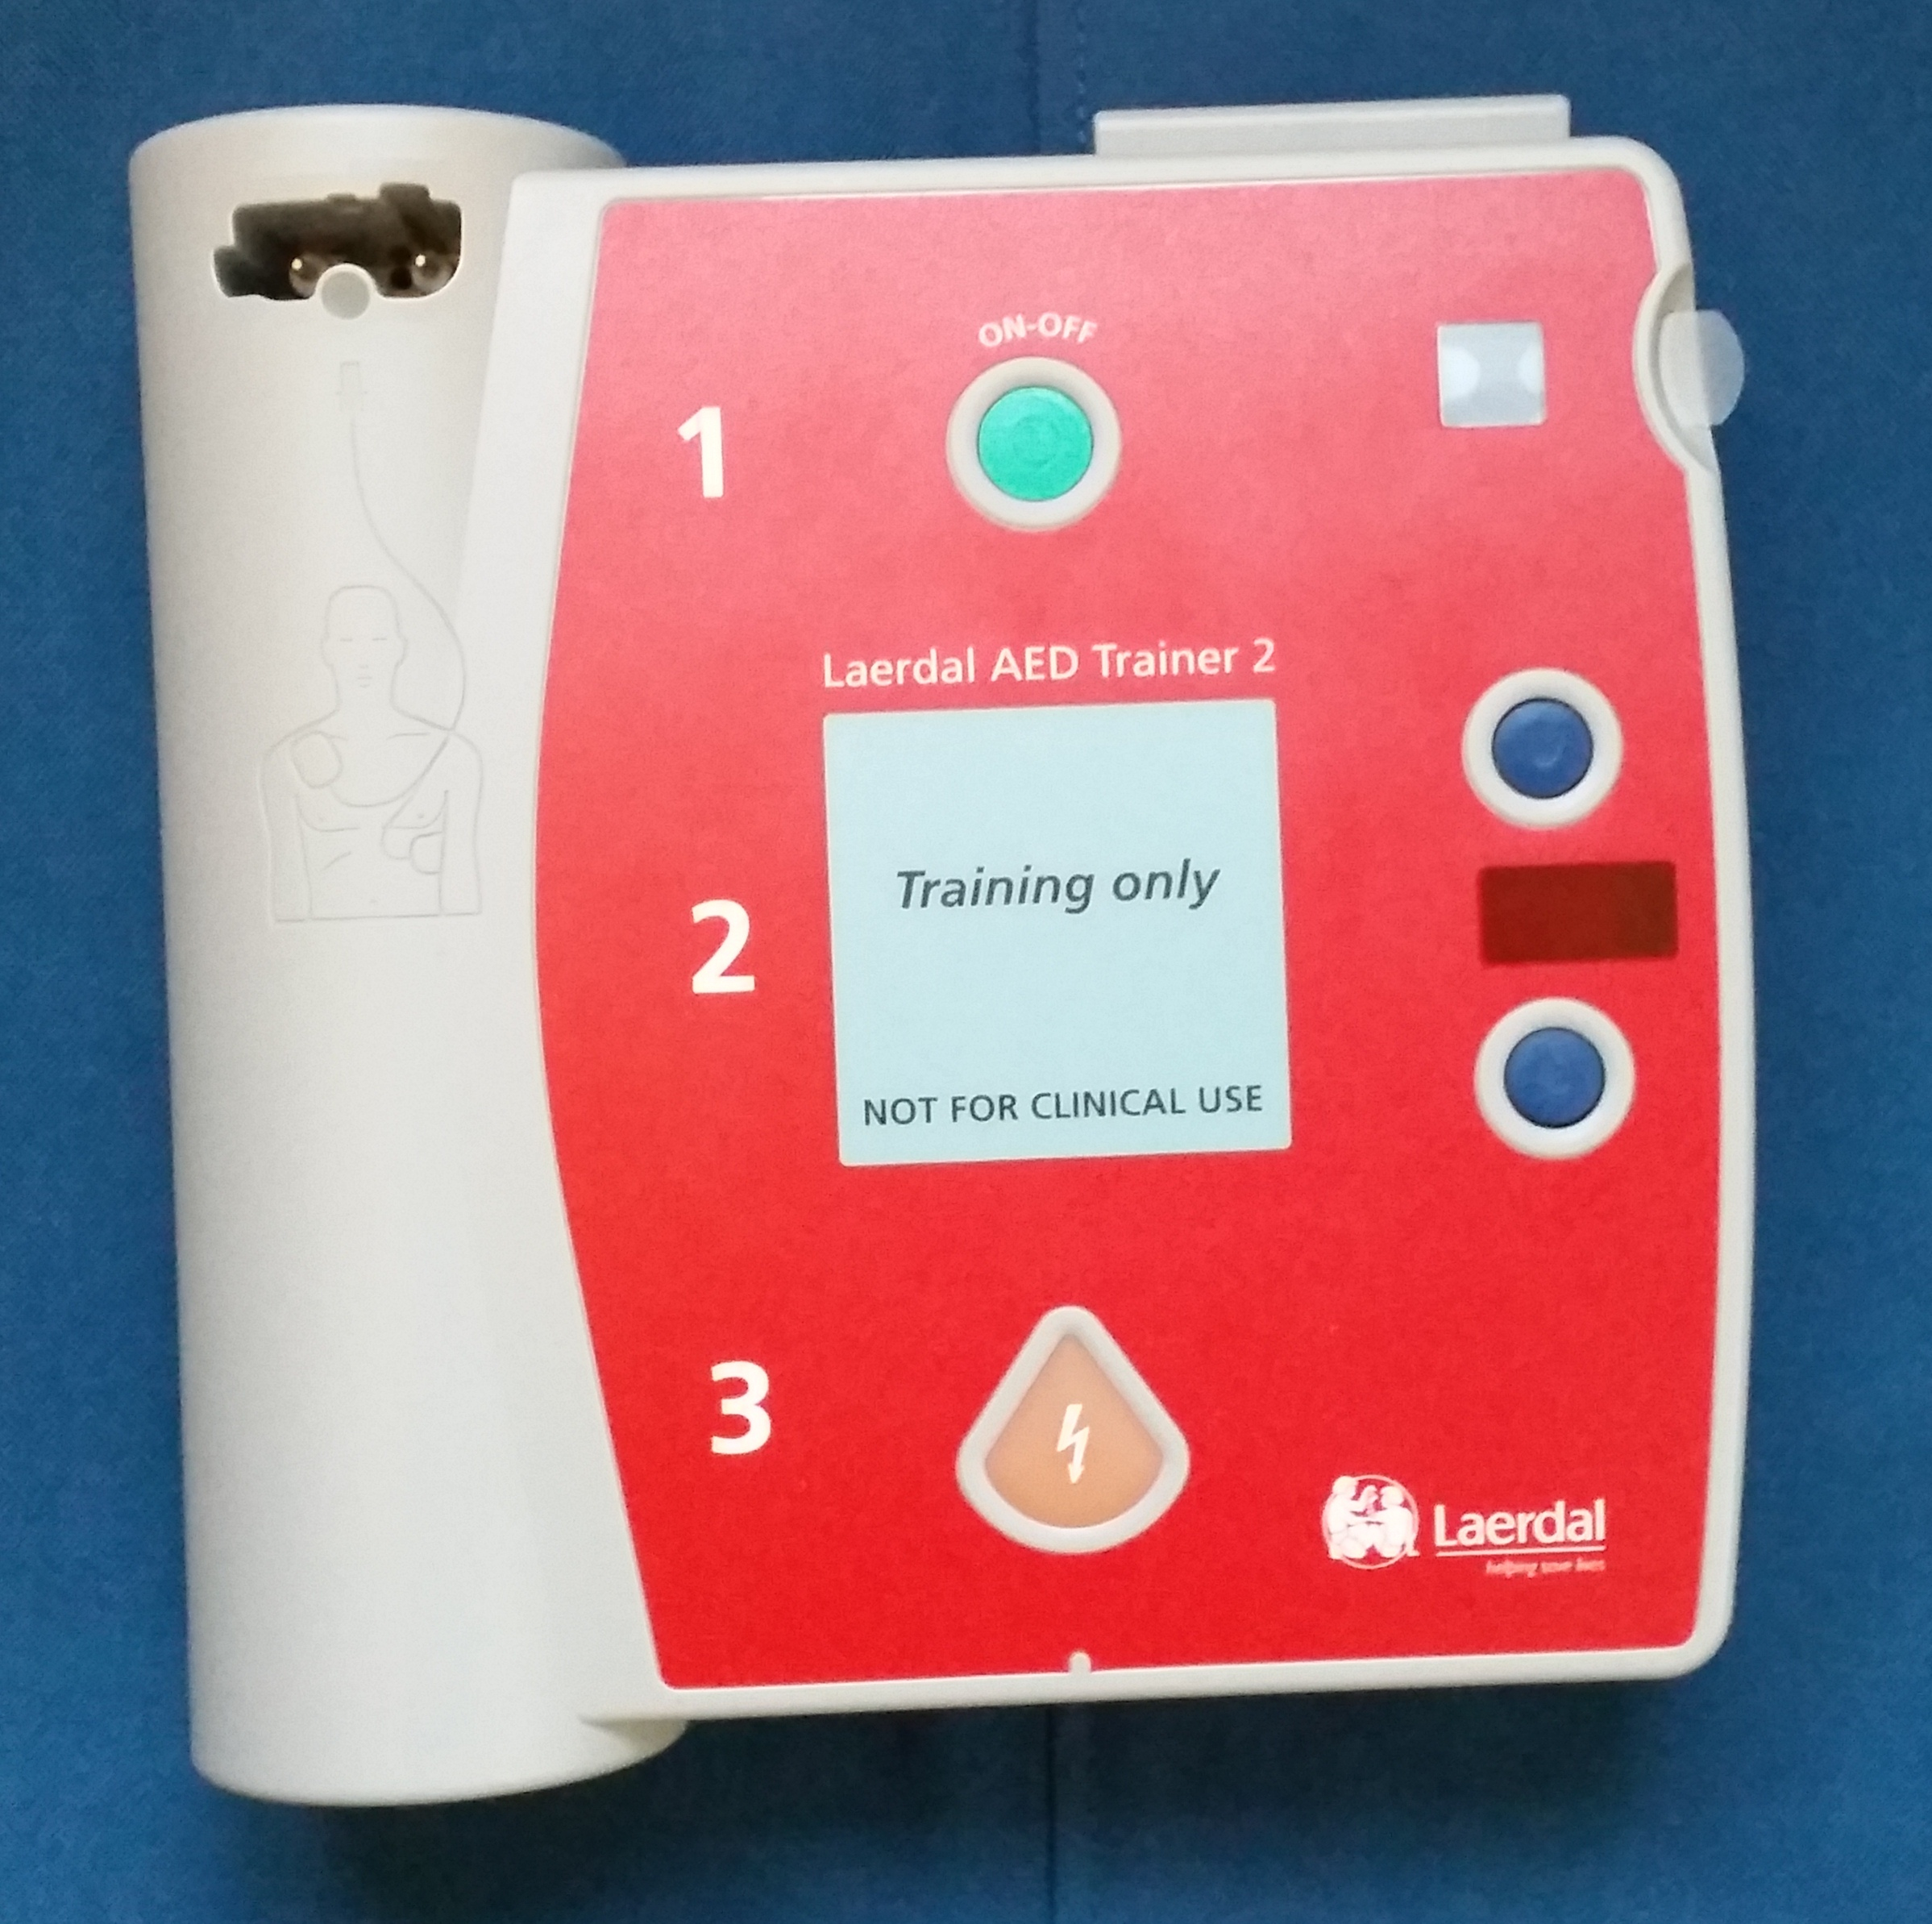 AED Training Course - Defibrillator training course